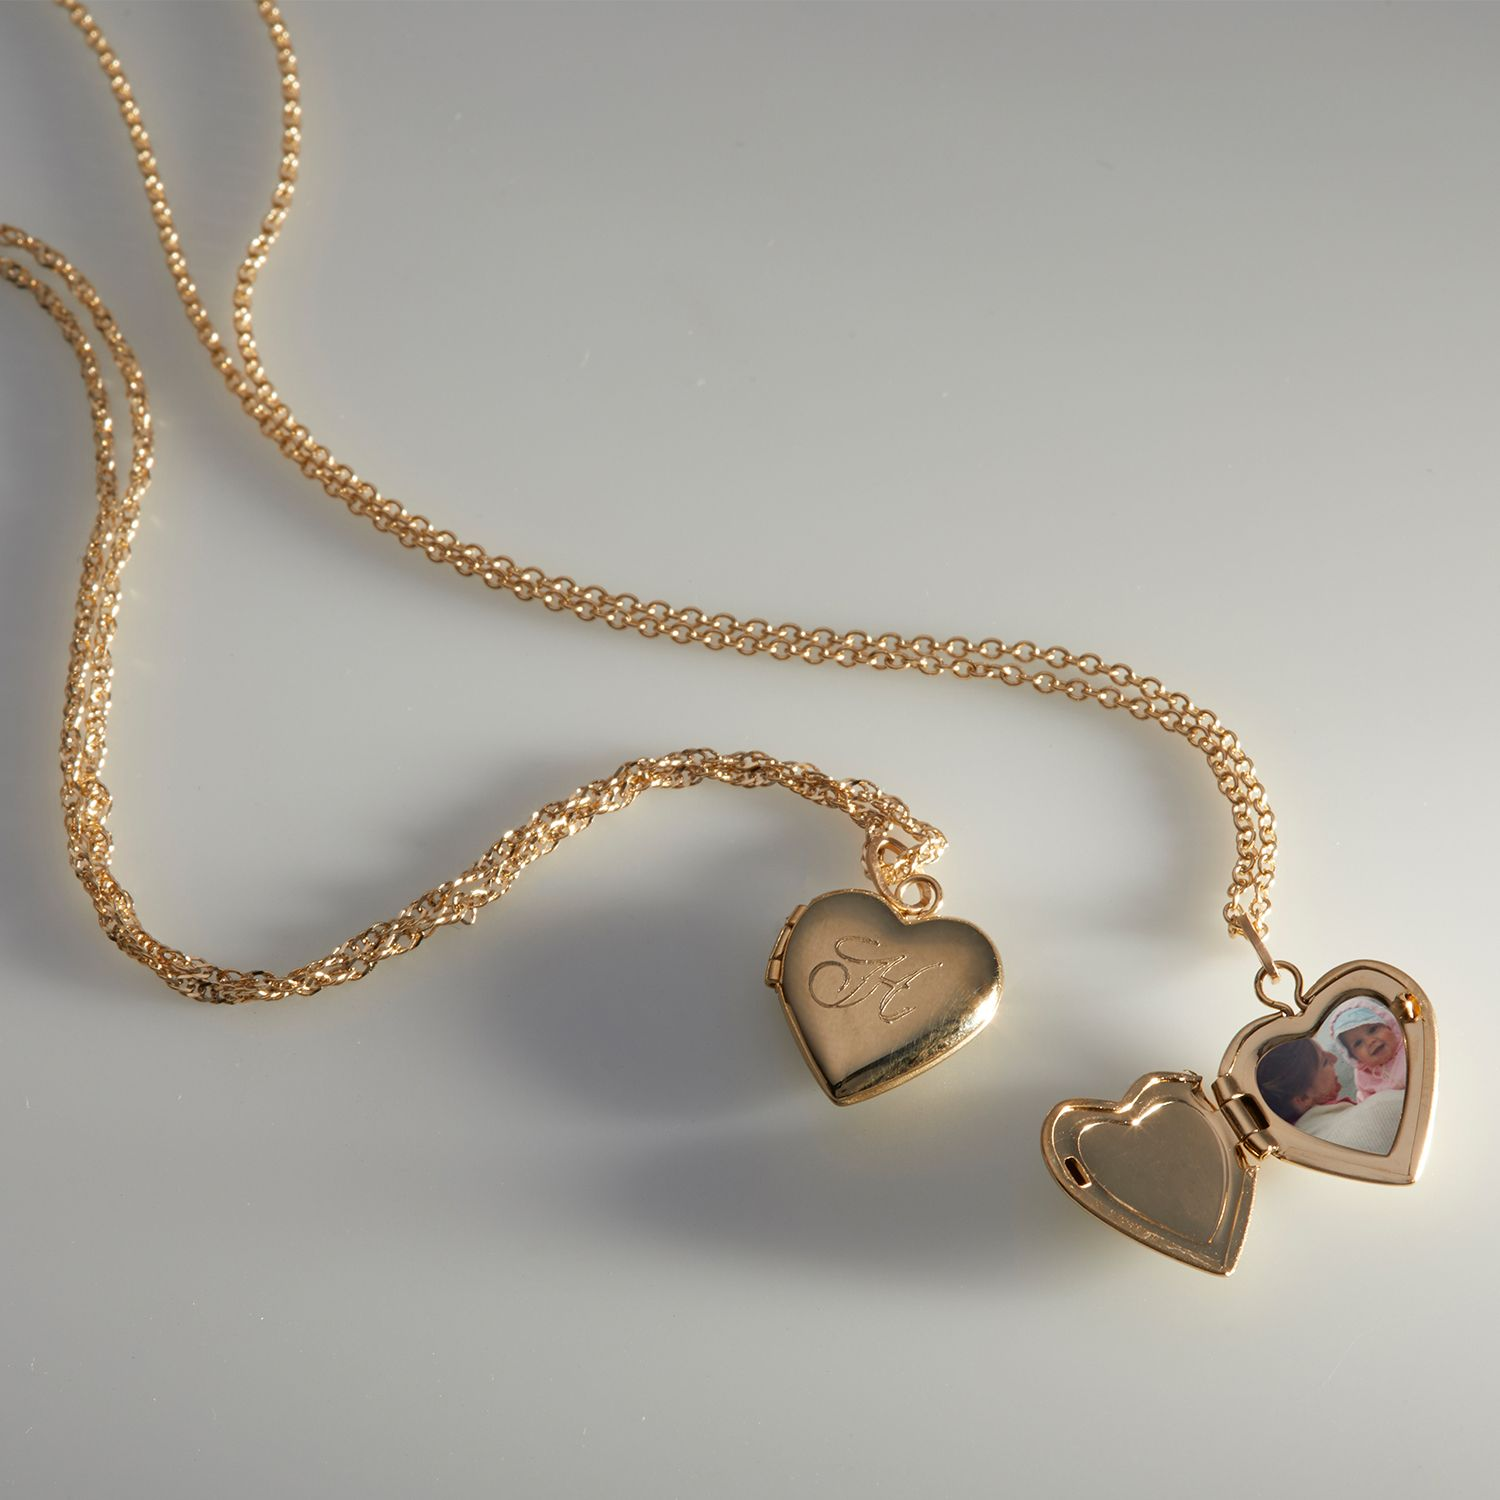 favorite weekly finds from around the web, including this Catbird Dollhouse Heart Locket | glitterinc.com | @glitterinc